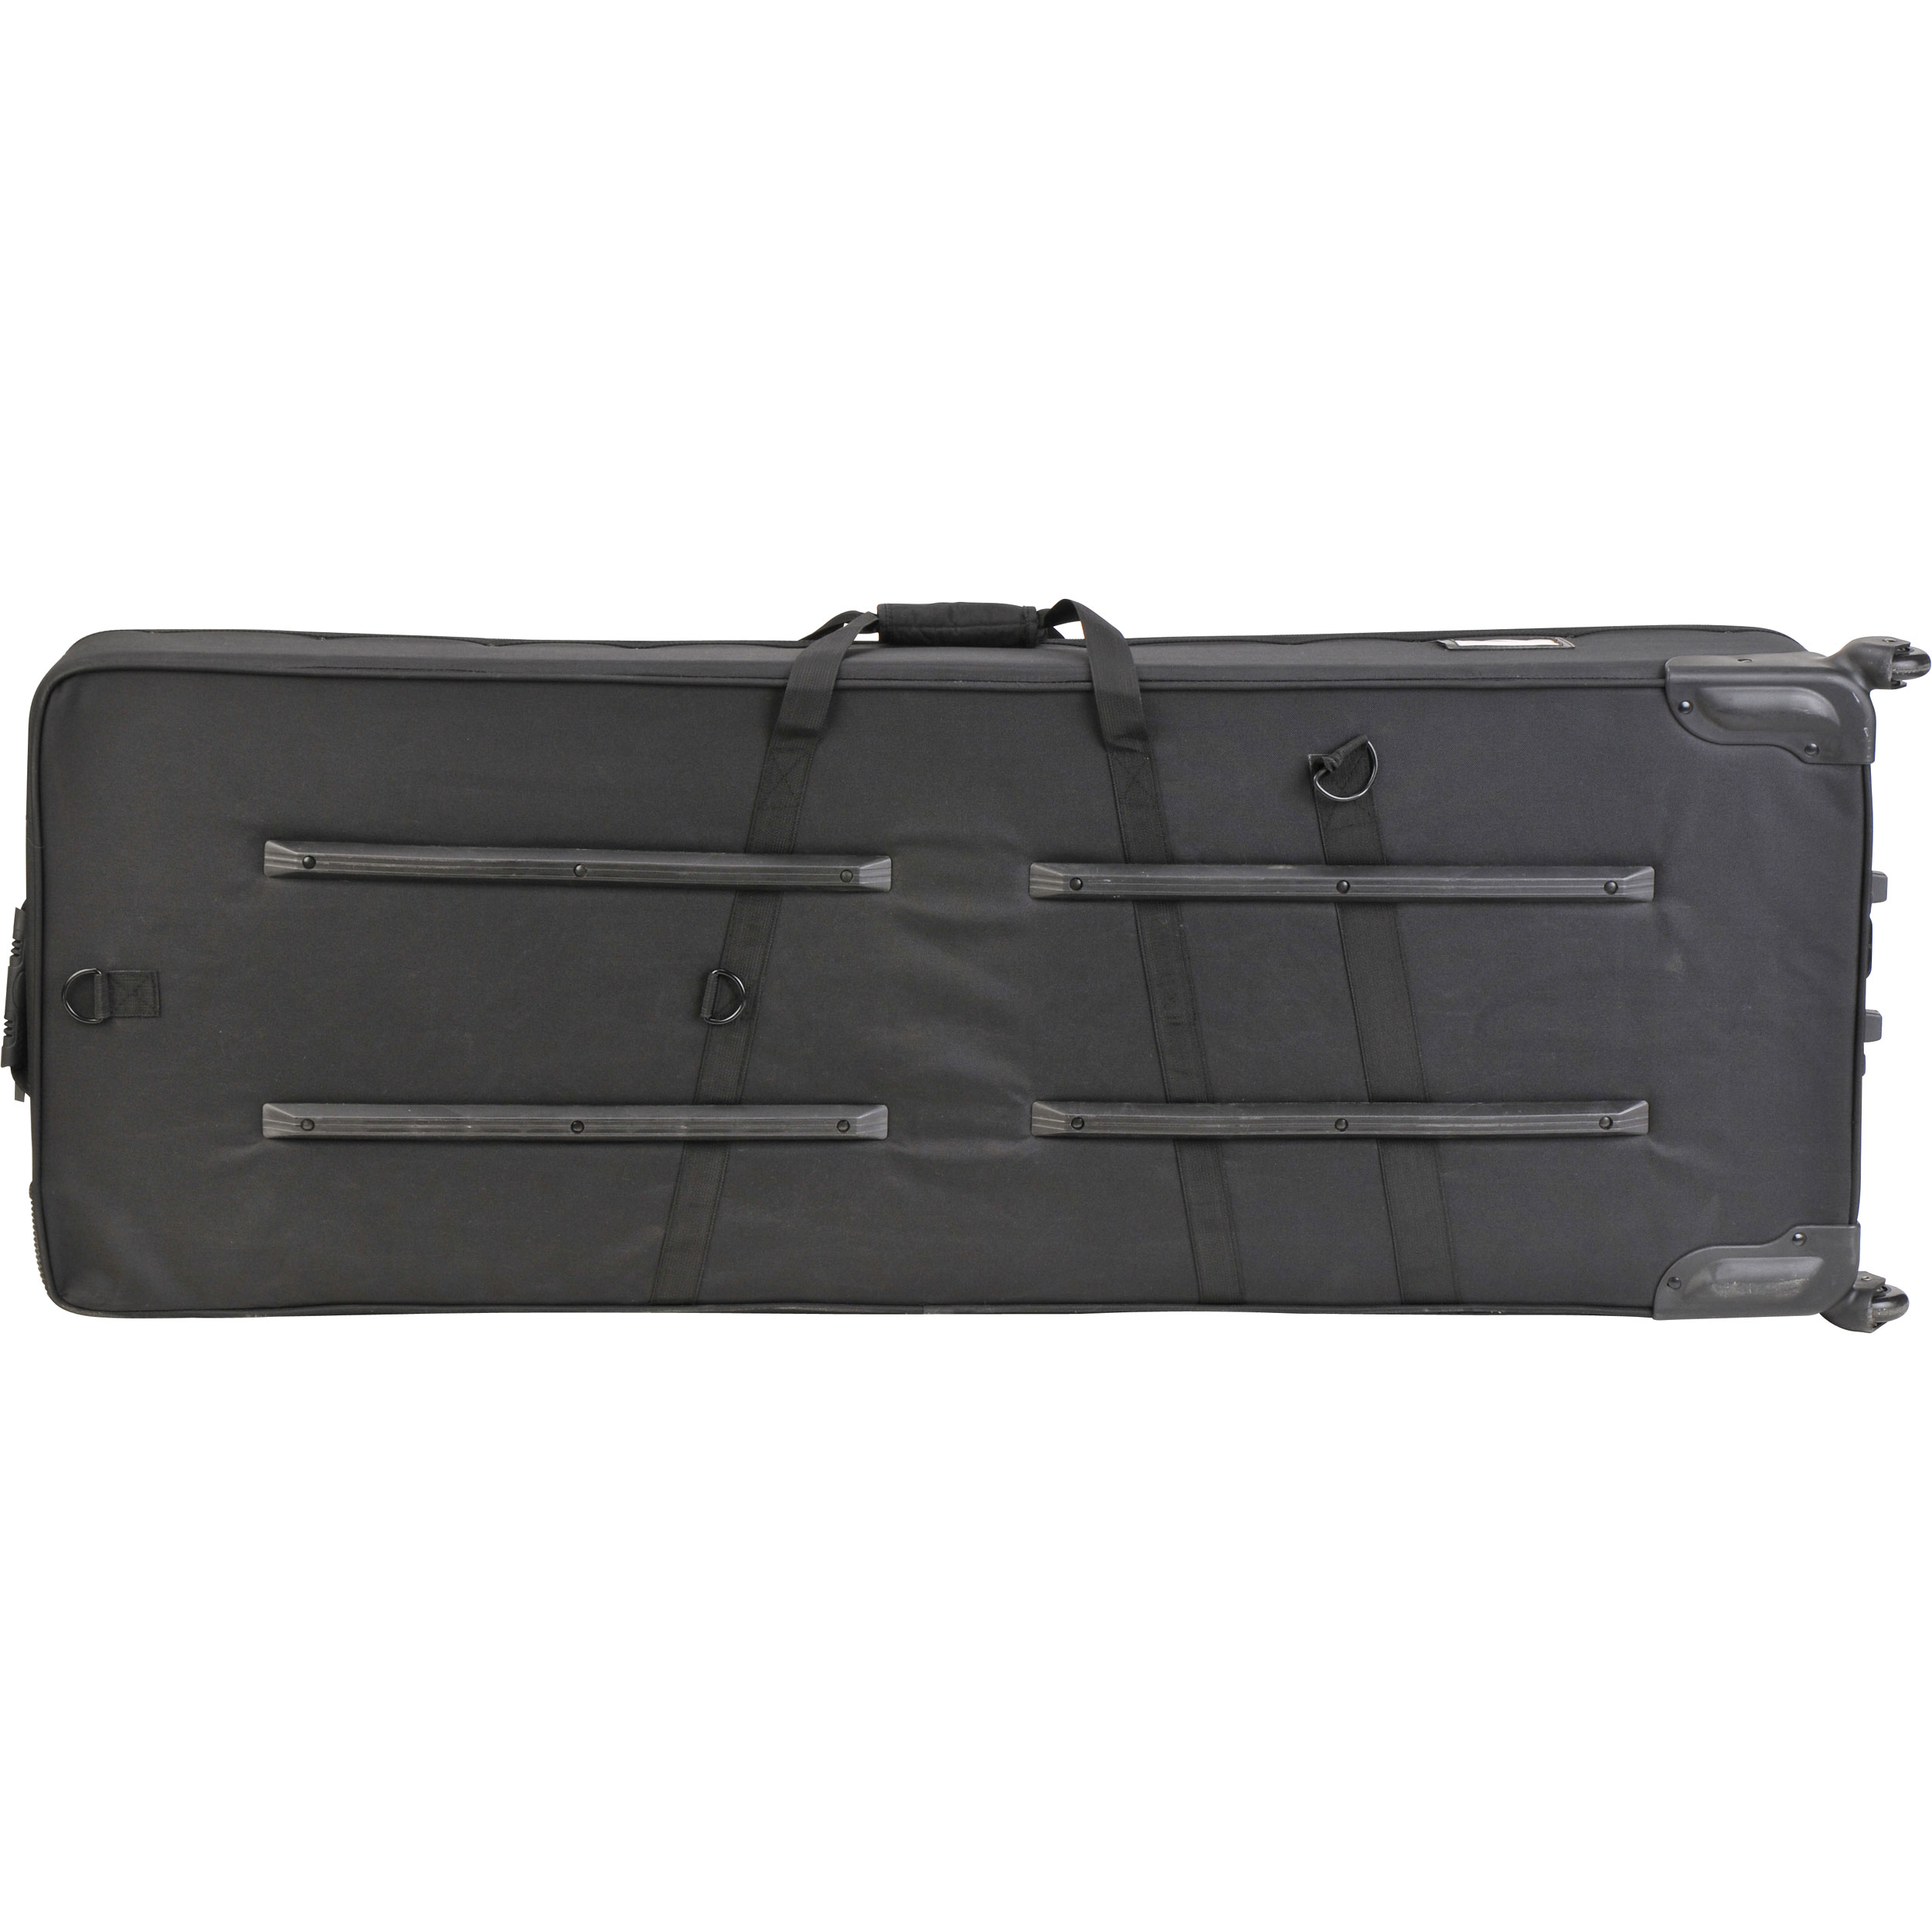 SKB 88-Key Soft Keyboard Bag with Pockets